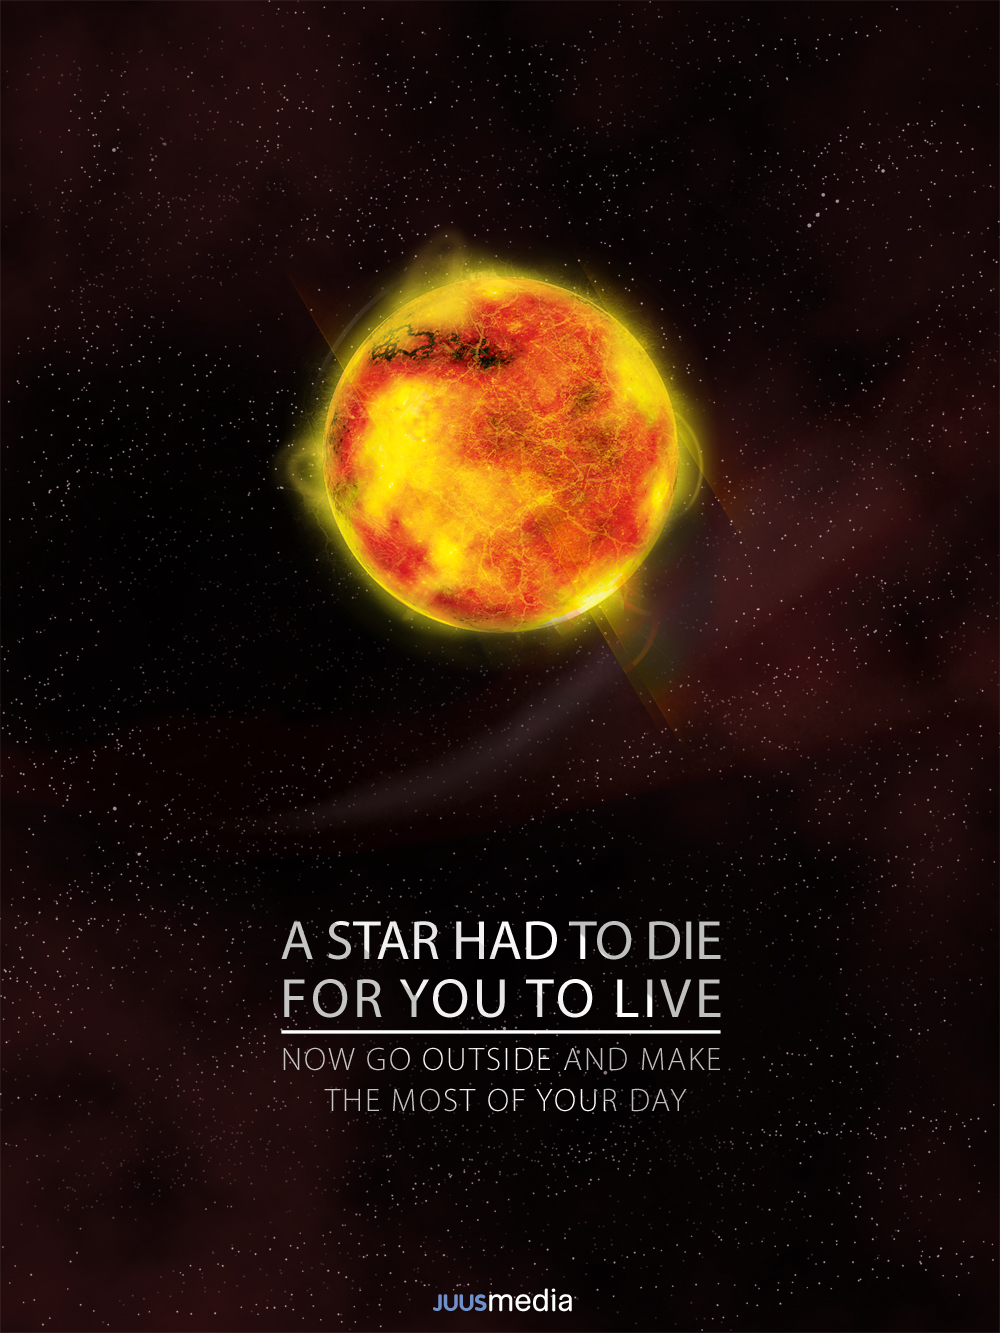 A Star Had to Die